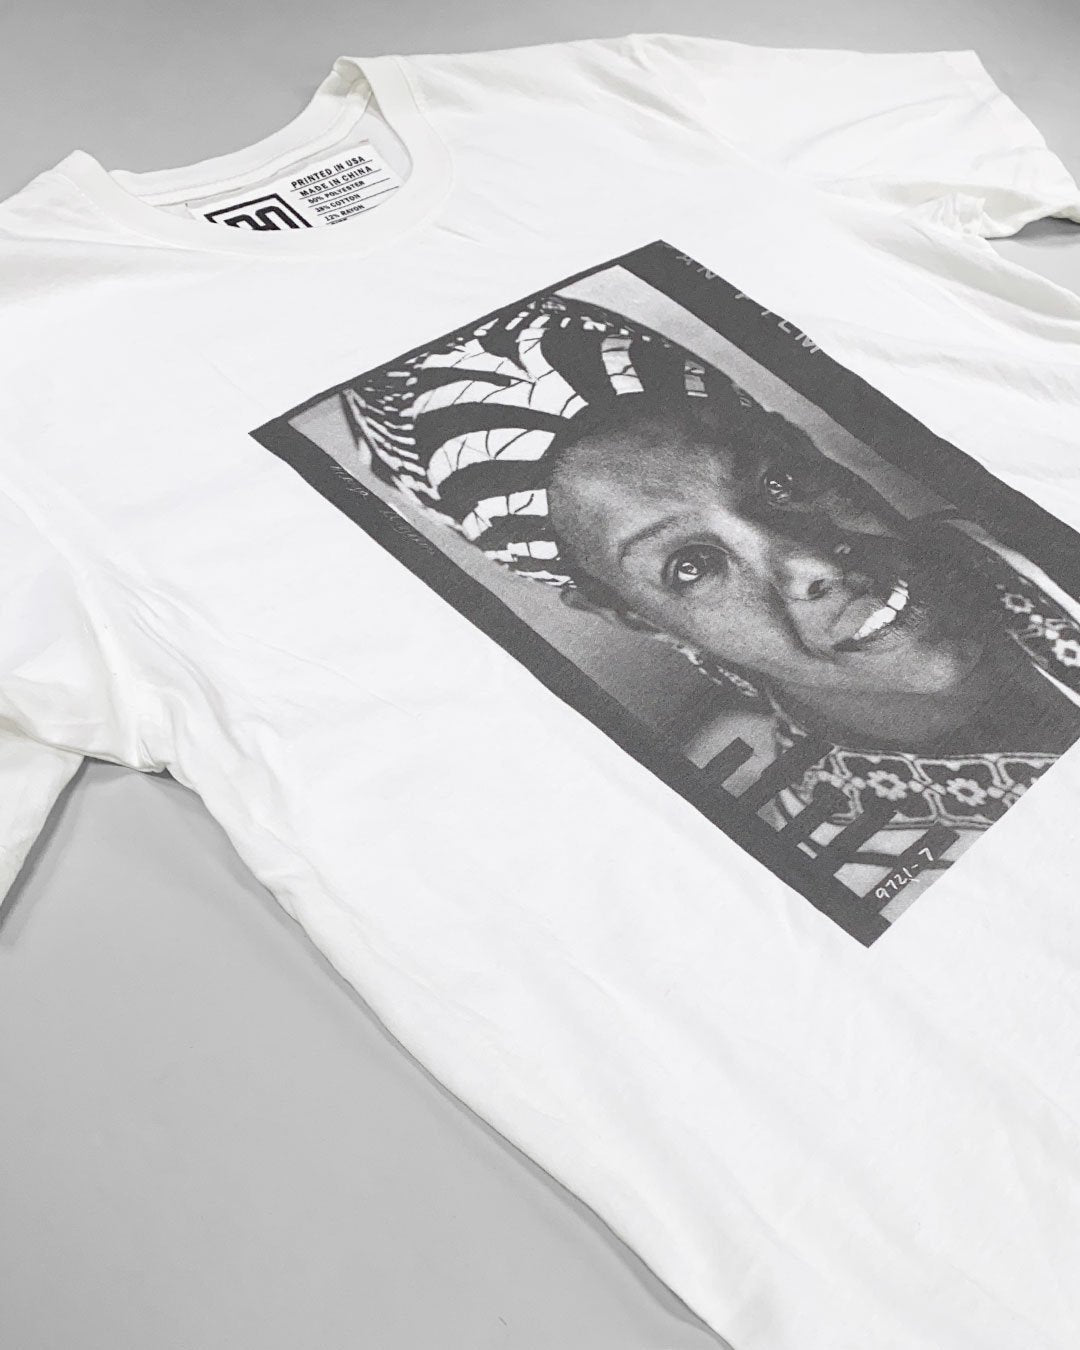 BHT - Maya Angelou Photo Tee - Roots of Inc dba Roots of Fight